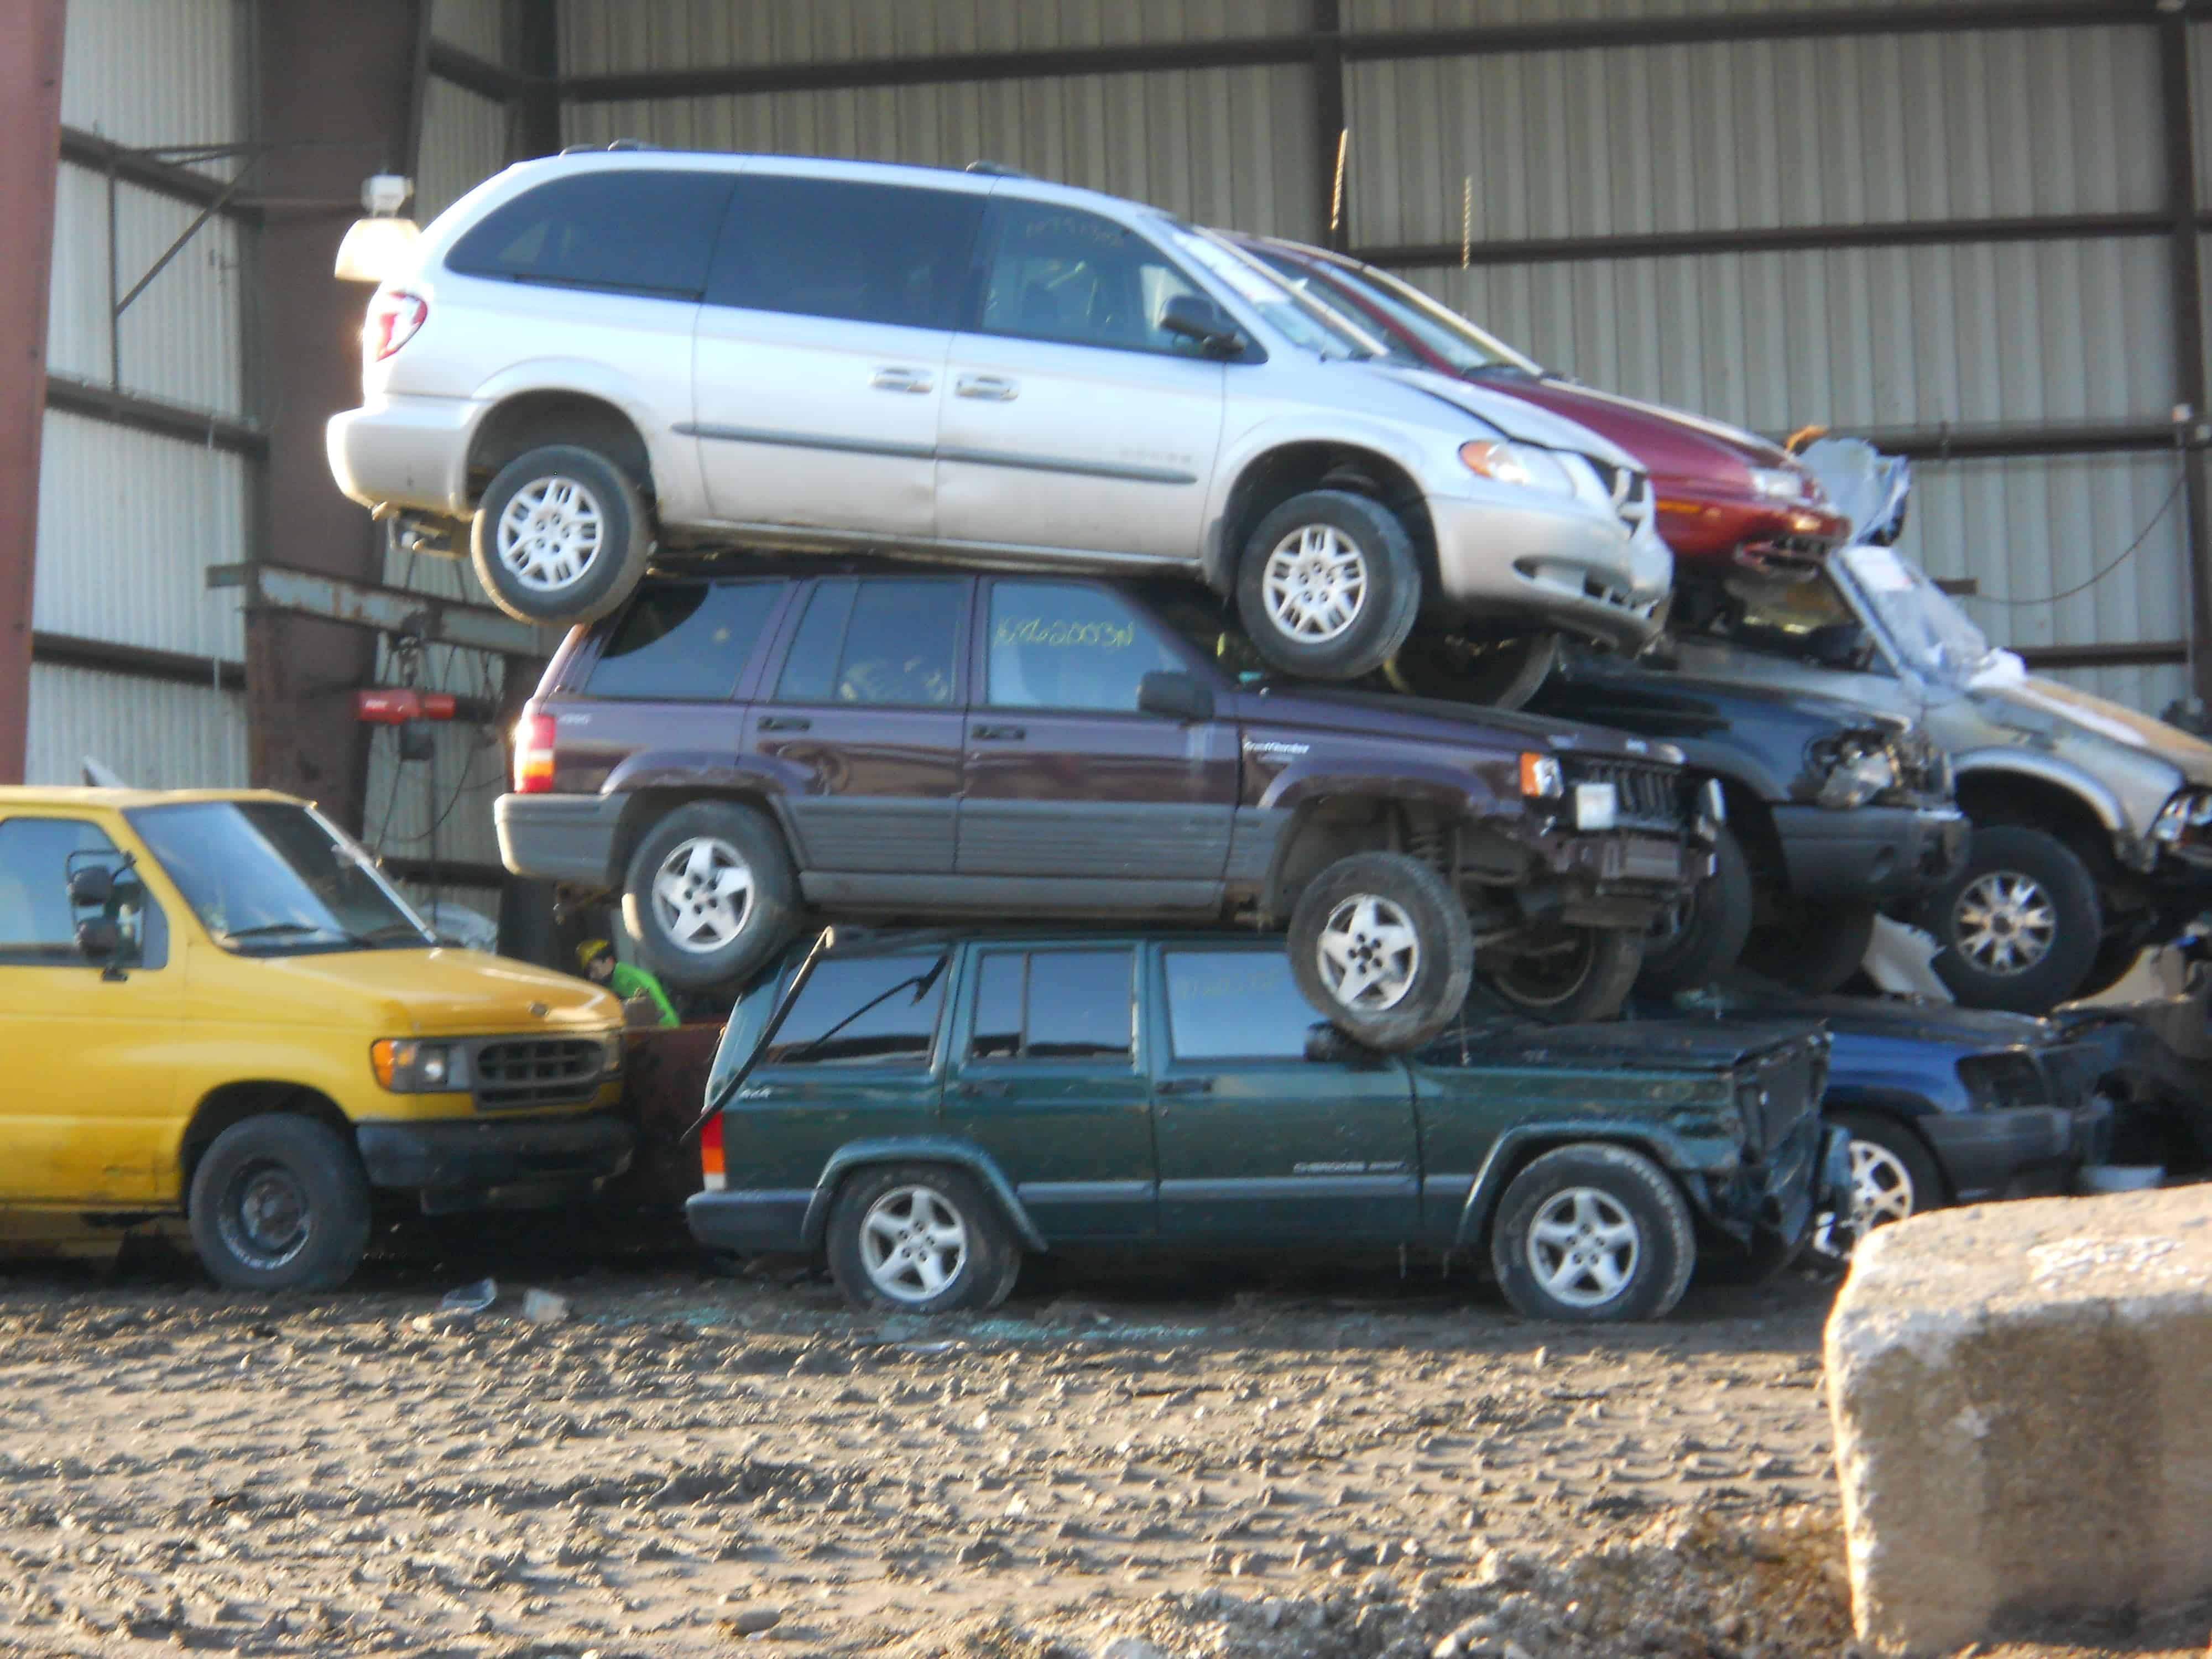 Junk Car Yard Is Located in Walpole MA | ARS Towing & Junk Car Removal